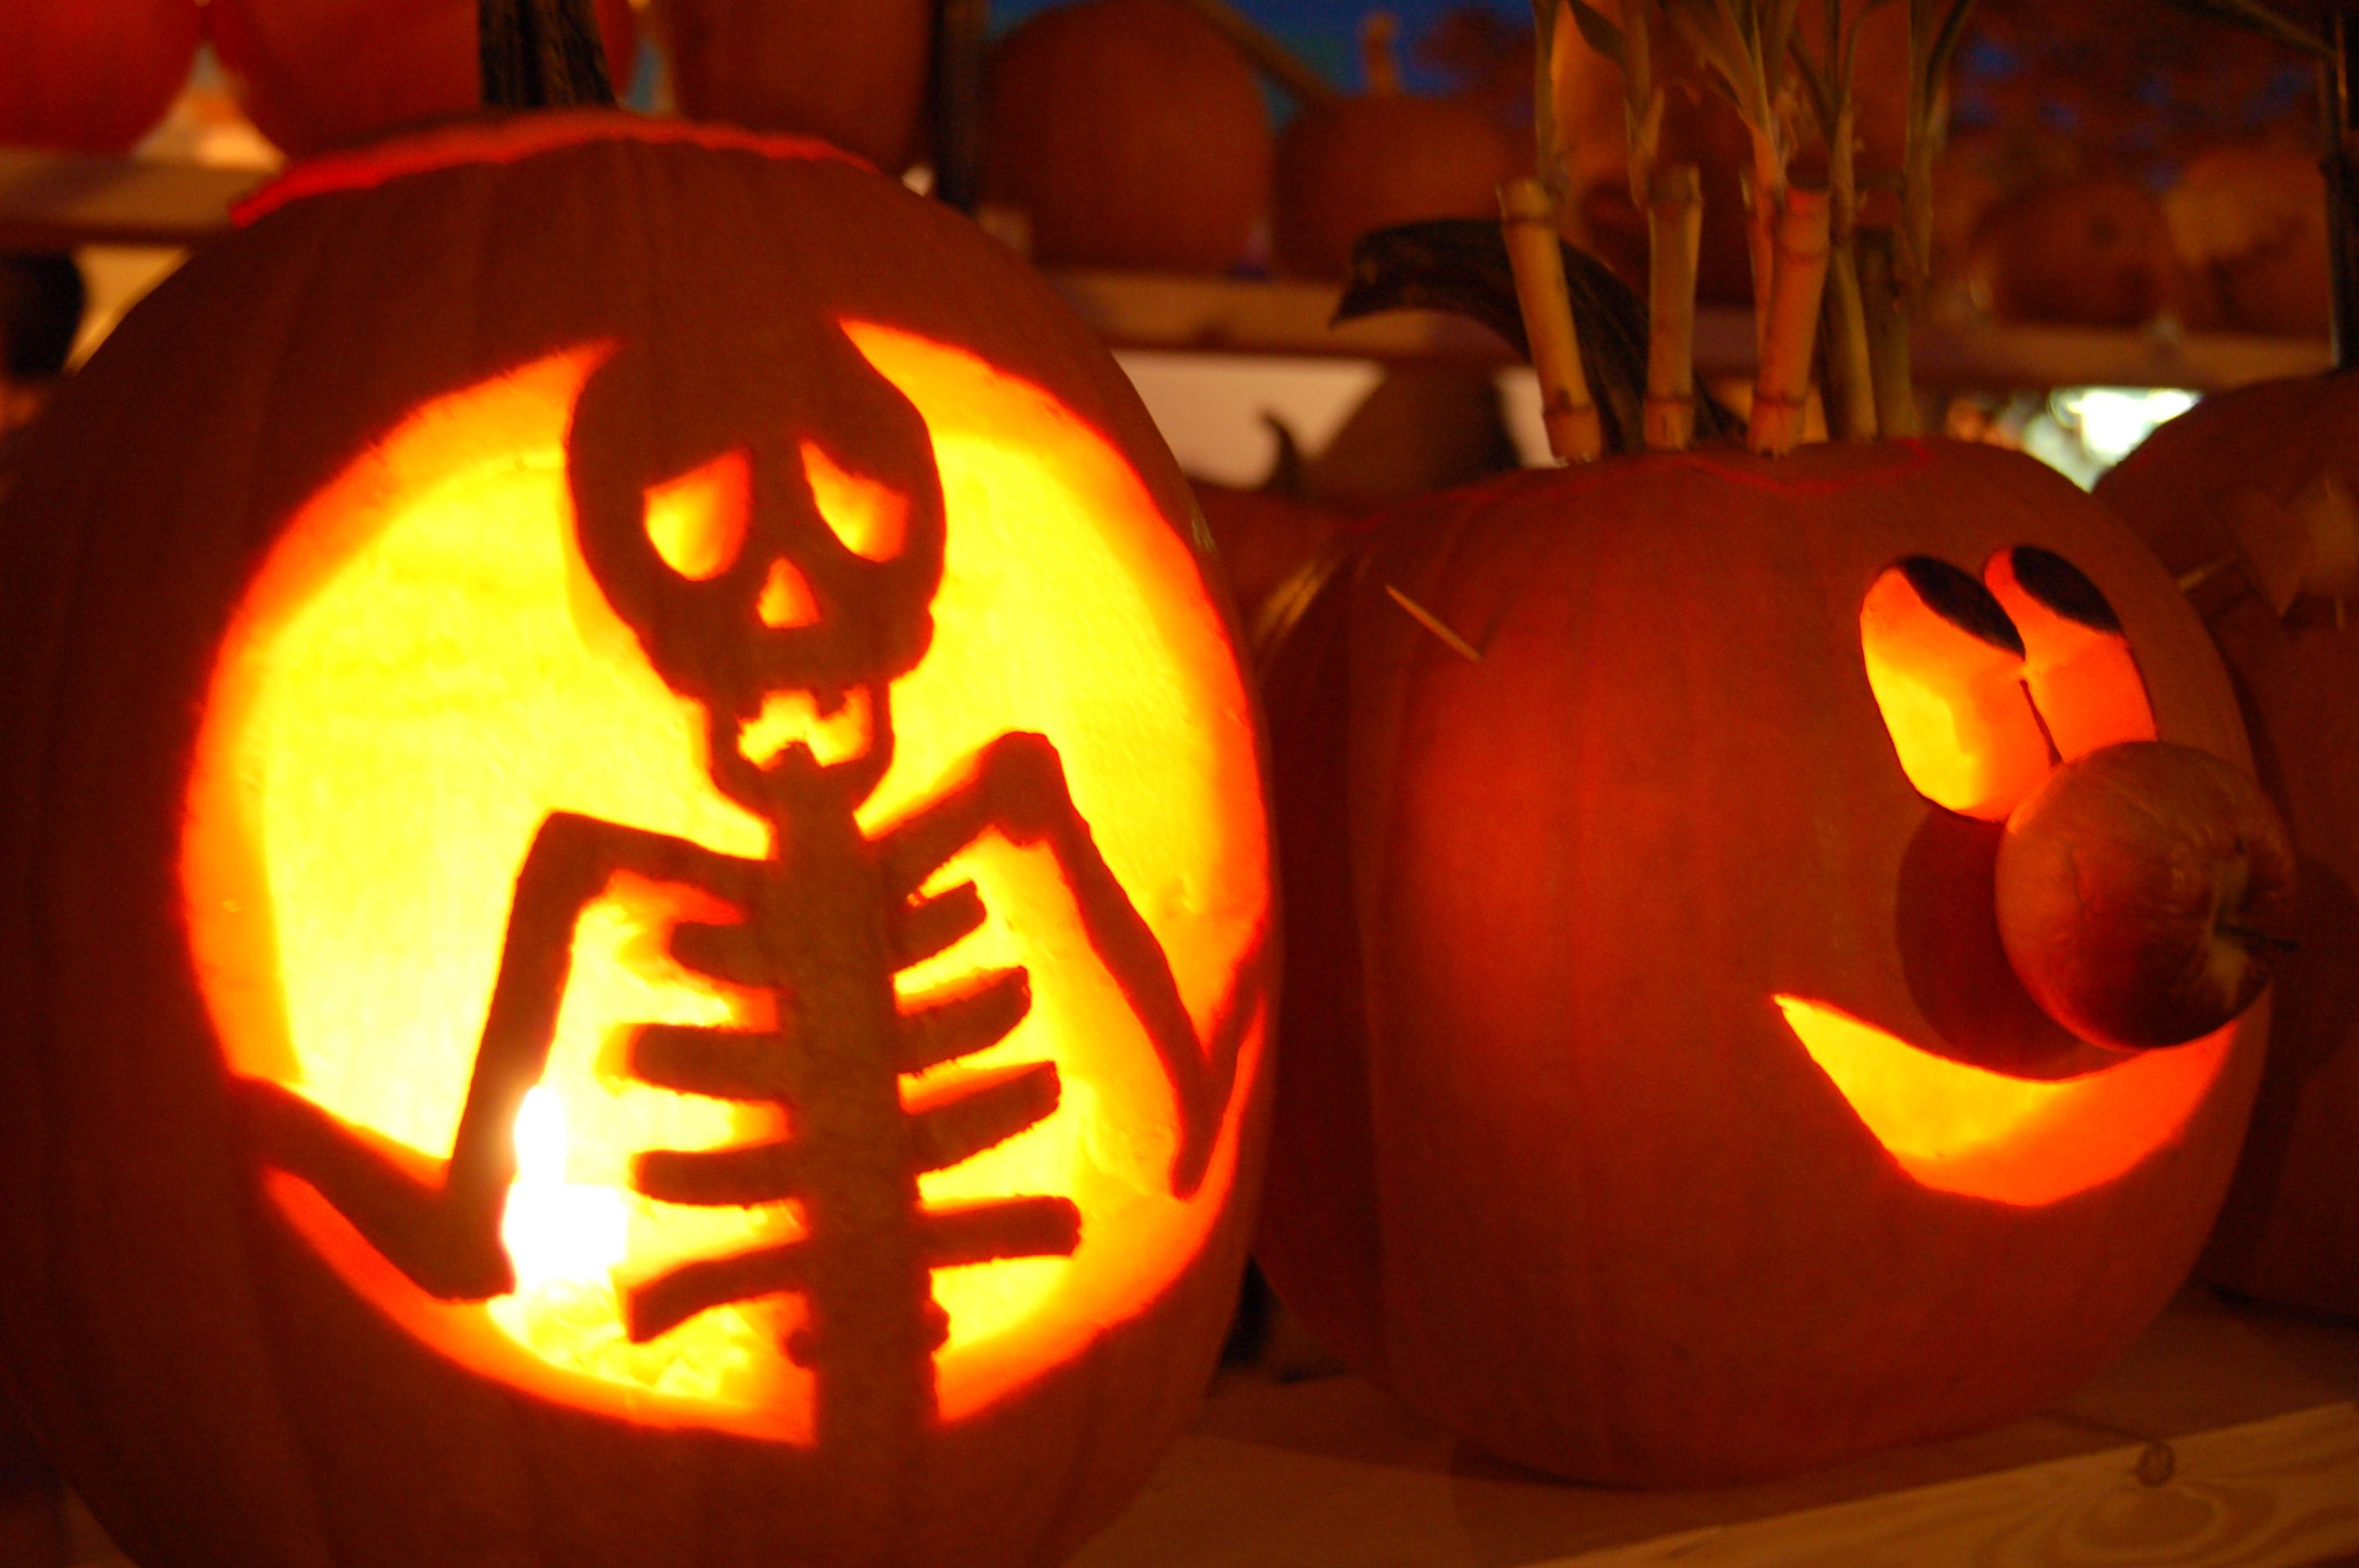 Uncategorized Pumpkim Designs pumpkin carving patterns with some cool for pumpkins you can light up the